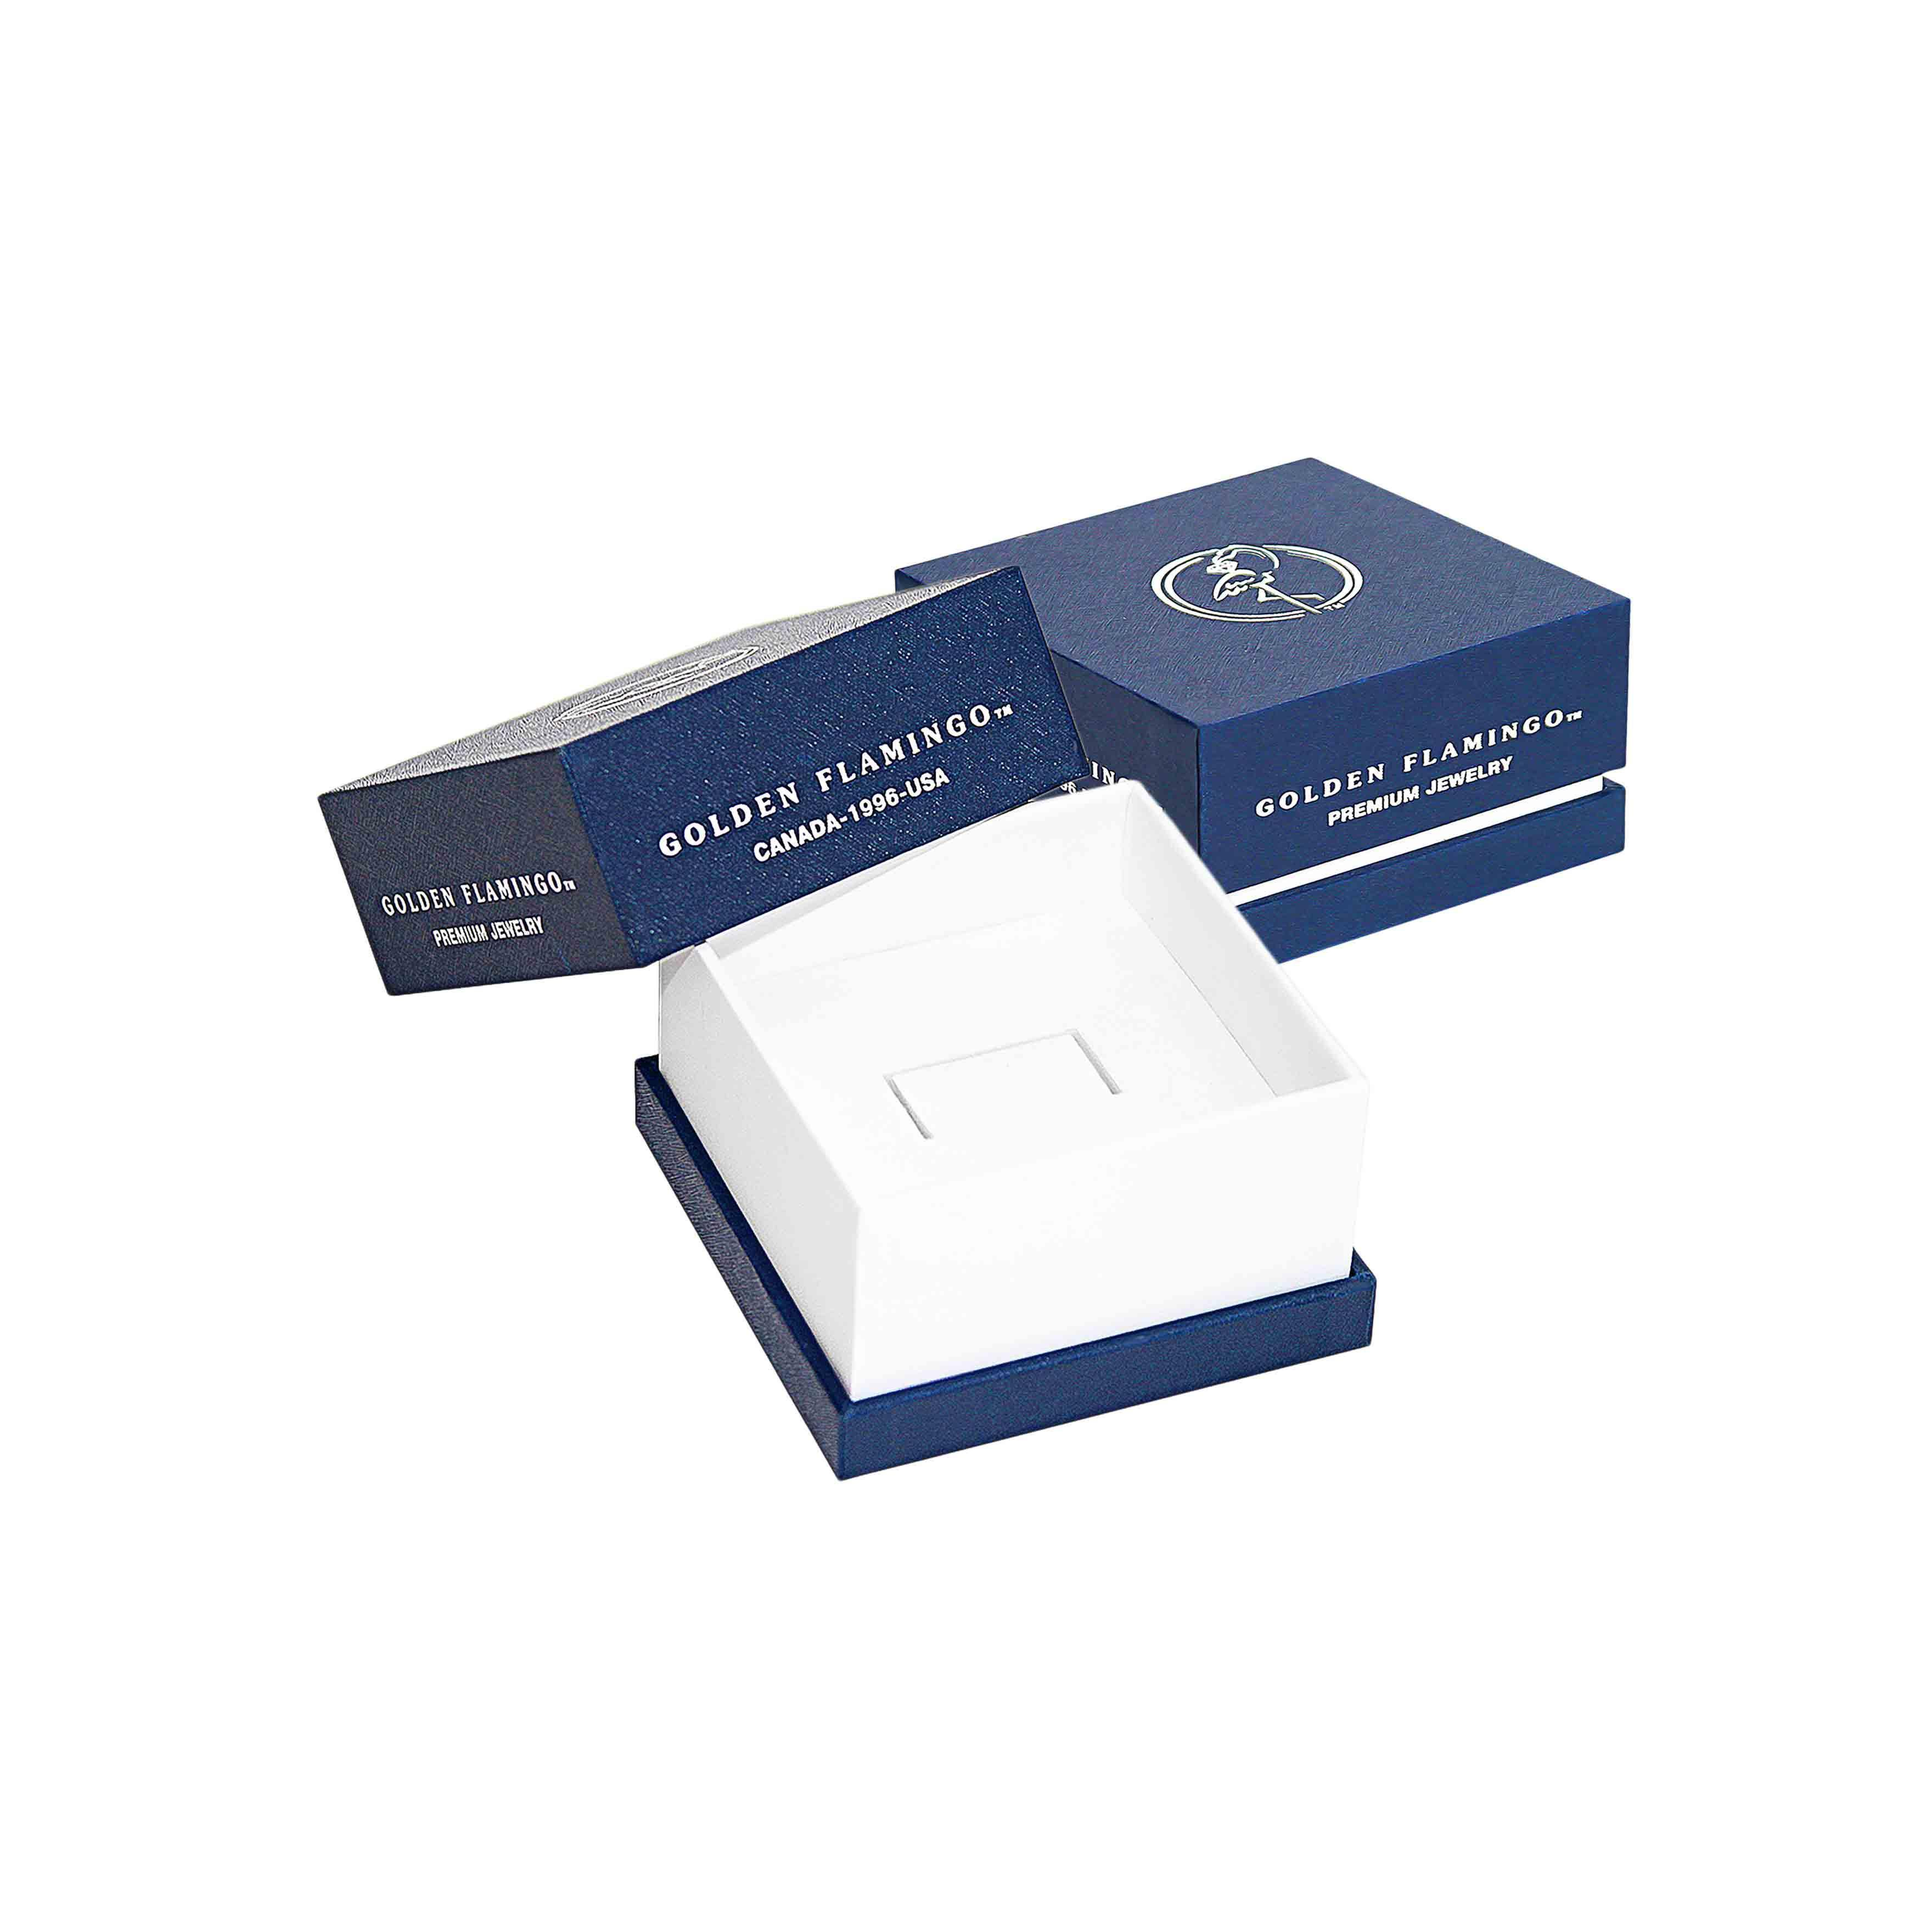 Deluxe gift box for earrings